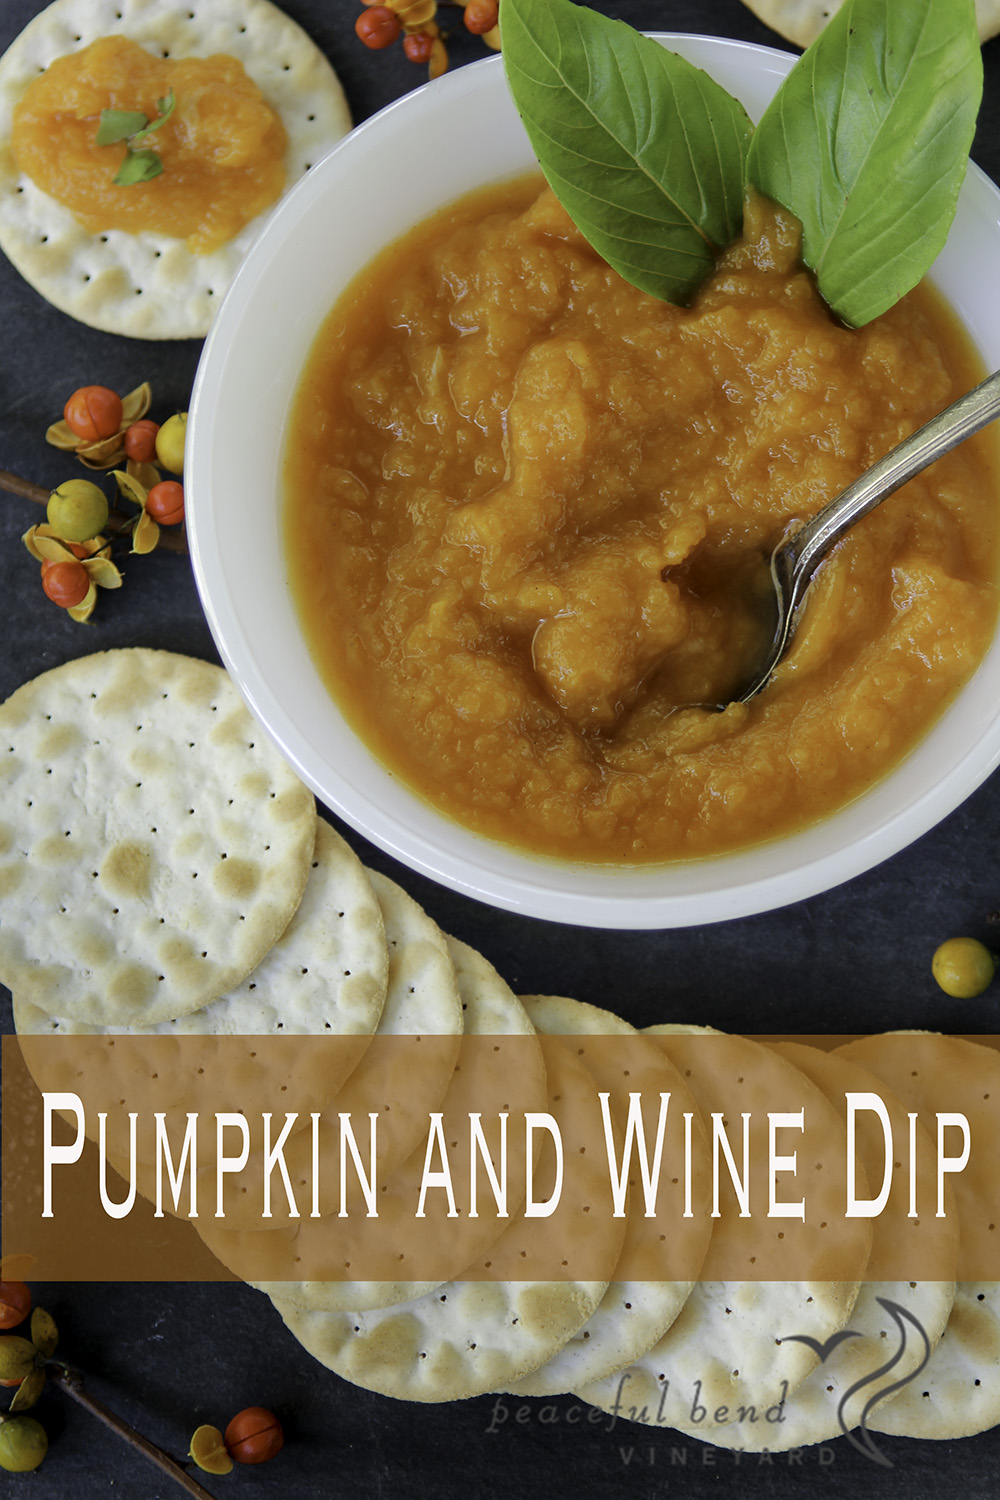 Pumpkin and Wine Dip